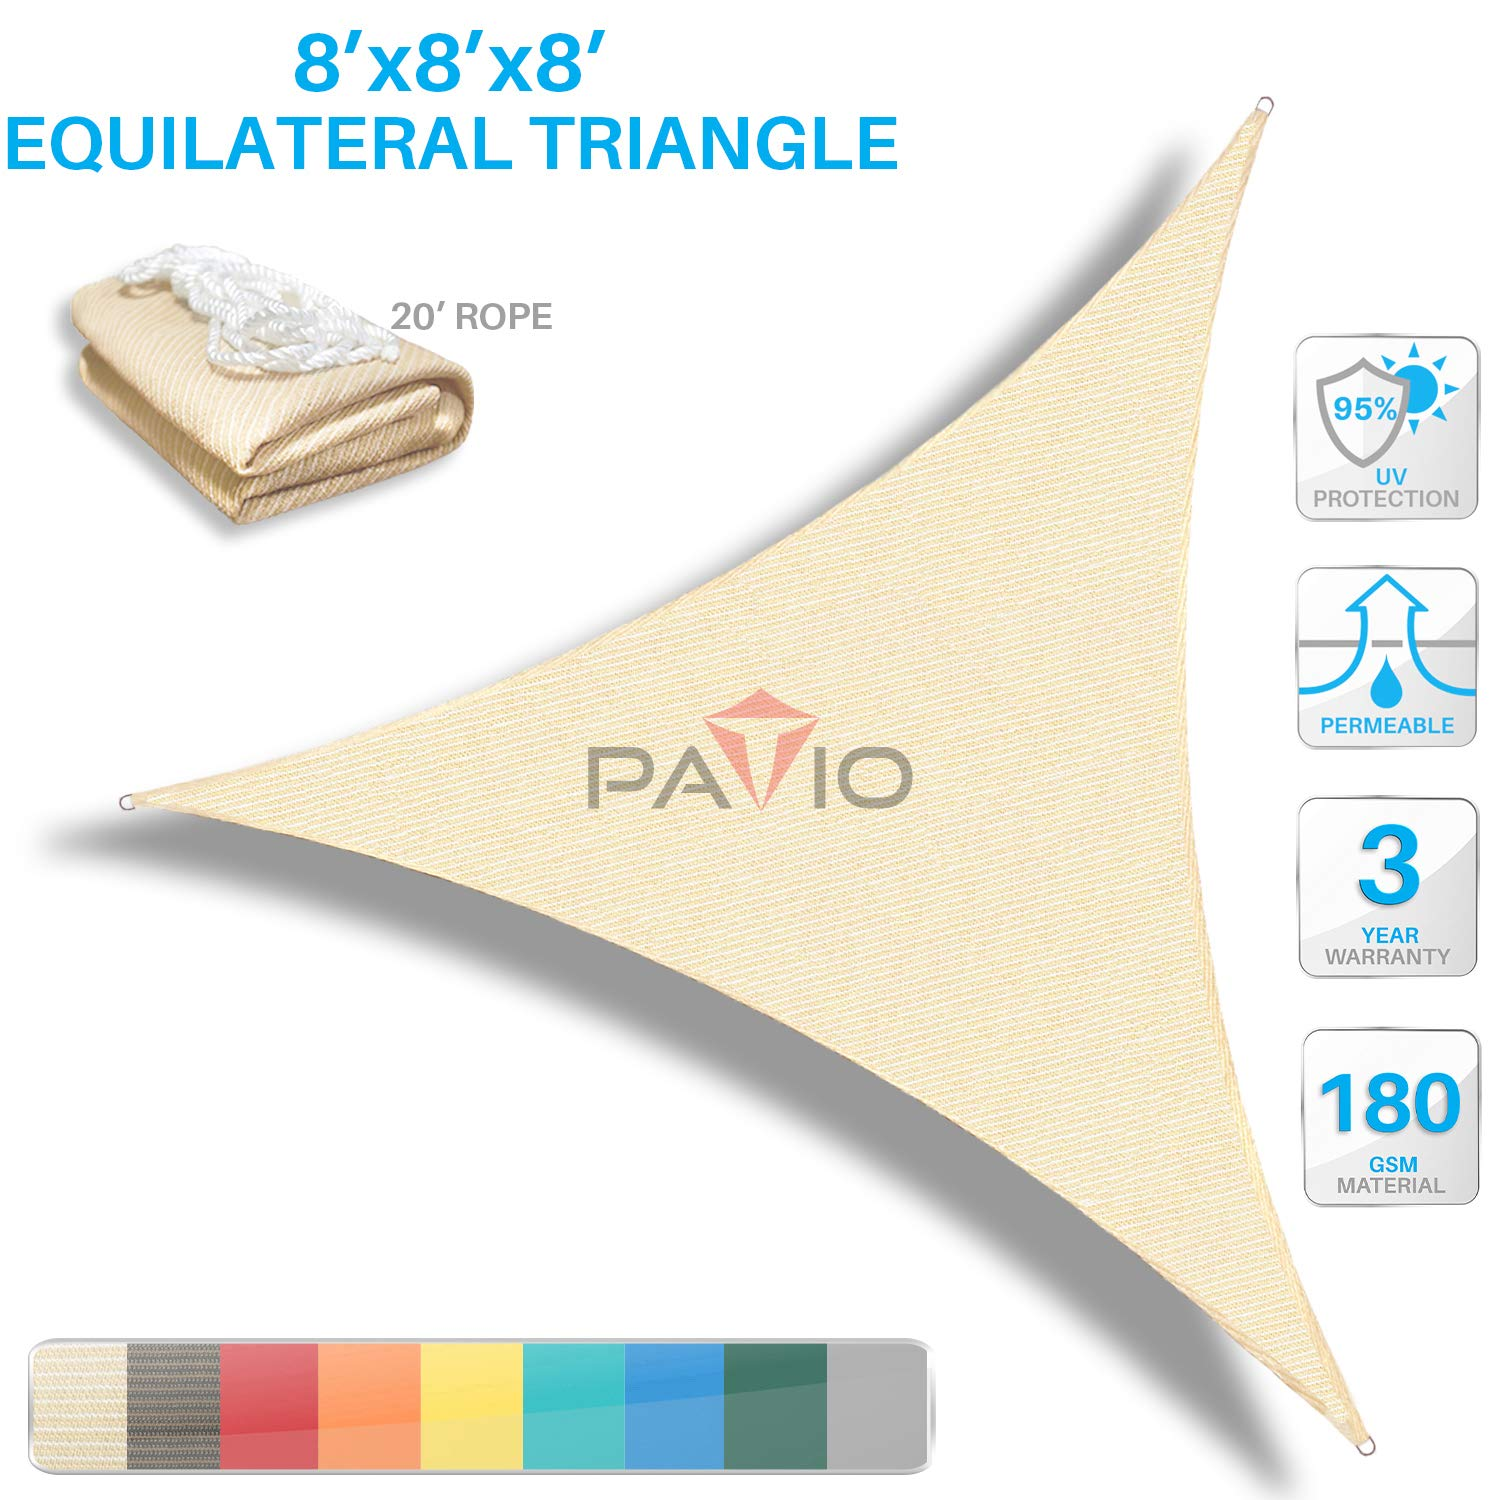 Patio Paradise 8' x8'x 8' Beige Sun Shade Sail Triangle Canopy - Permeable UV Block Fabric Durable Outdoor  - Customized Available by Patio